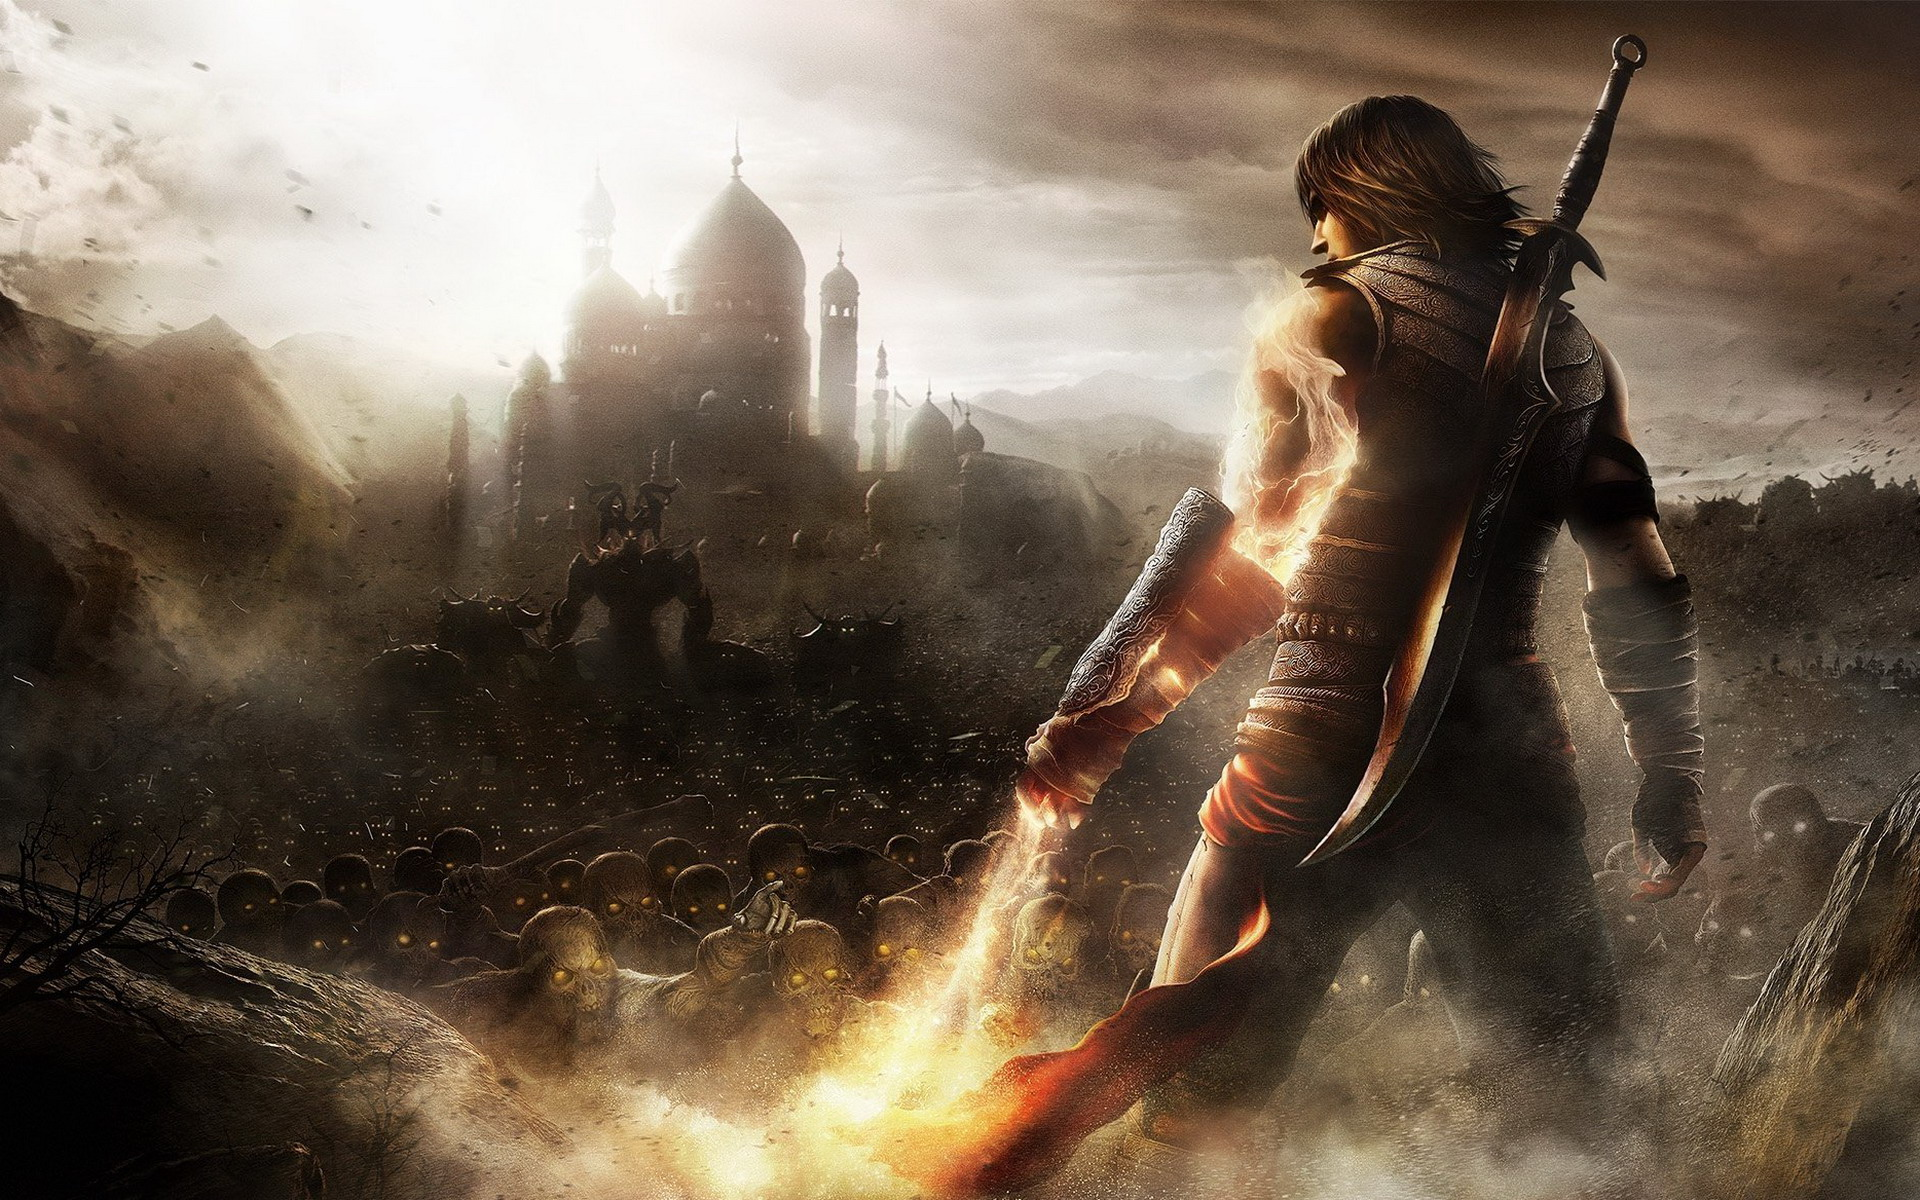 Prince Of Persia Game Wallpapers HD Free Download